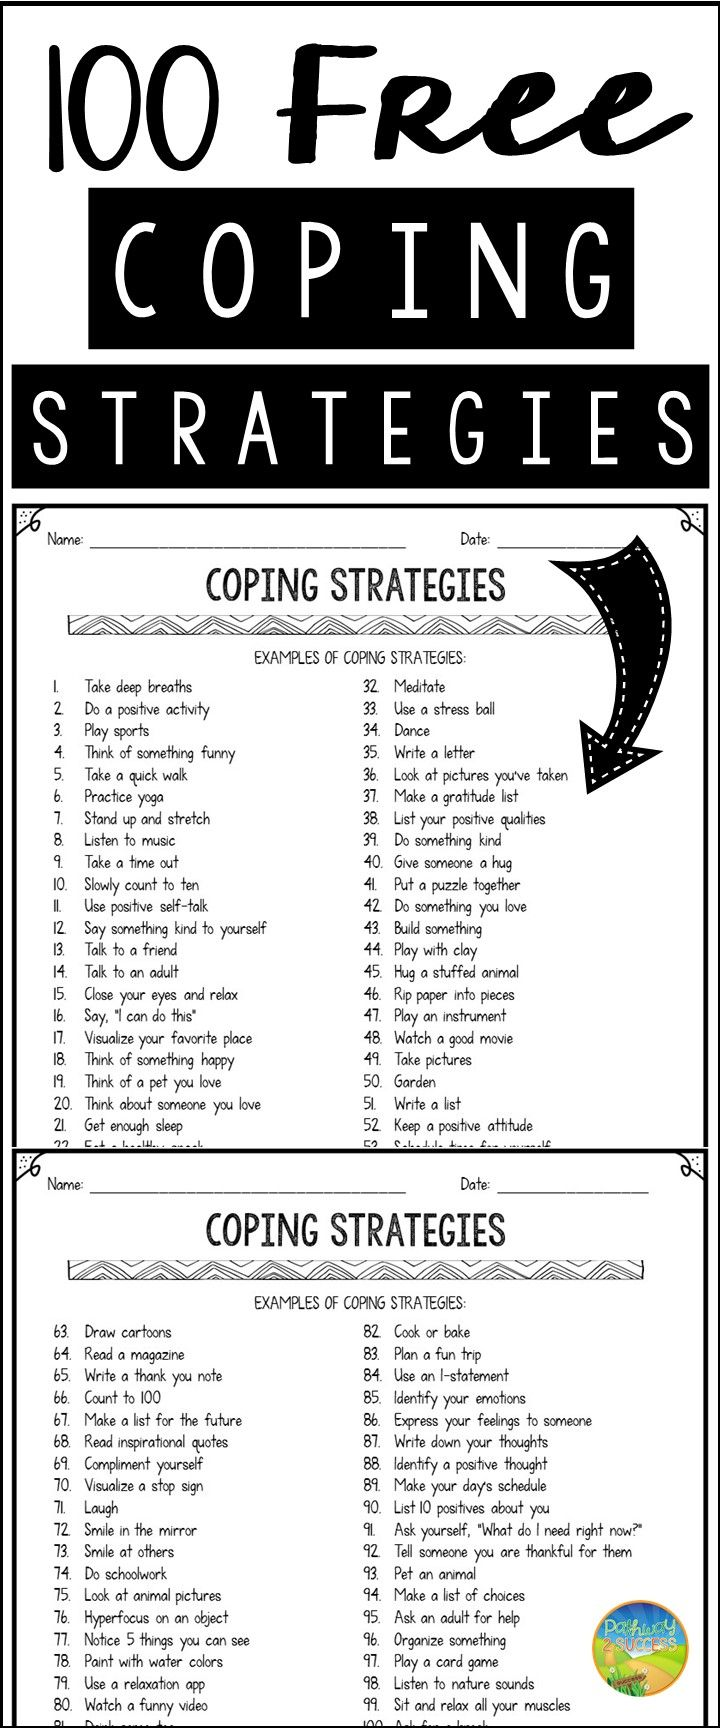 Anger Management Group Therapy  Handouts and Worksheets together with Worksheet Modern Coping Skills Worksheets Luxury 73 Best Anger besides  also Best Coping Skills Worksheets   ideas and images on Bing   Find what in addition 100 FREE coping strategies for anxiety  anger  depression  and more together with CBT Anger Management Worksheets   Handouts   Psychology Tools furthermore Anger Management Archives   the healing path with children together with Anxiety Worksheets   PsychPoint also CBT Anger Management Worksheets   Handouts   Psychology Tools as well Anger Management Worksheets   Mychaume furthermore Anger Management Test Worksheets for all   Download and Share further Anger Control Kit Management Skills Coping With Worksheets For Young likewise  likewise Anger Management Fact Sheets   Anger management   Pinterest   Anger together with Quiz   Worksheet   Coping with Anger Management   Study additionally Teen Anger Workbook   Anger Management Worksheets for Teens. on anger management coping skills worksheets